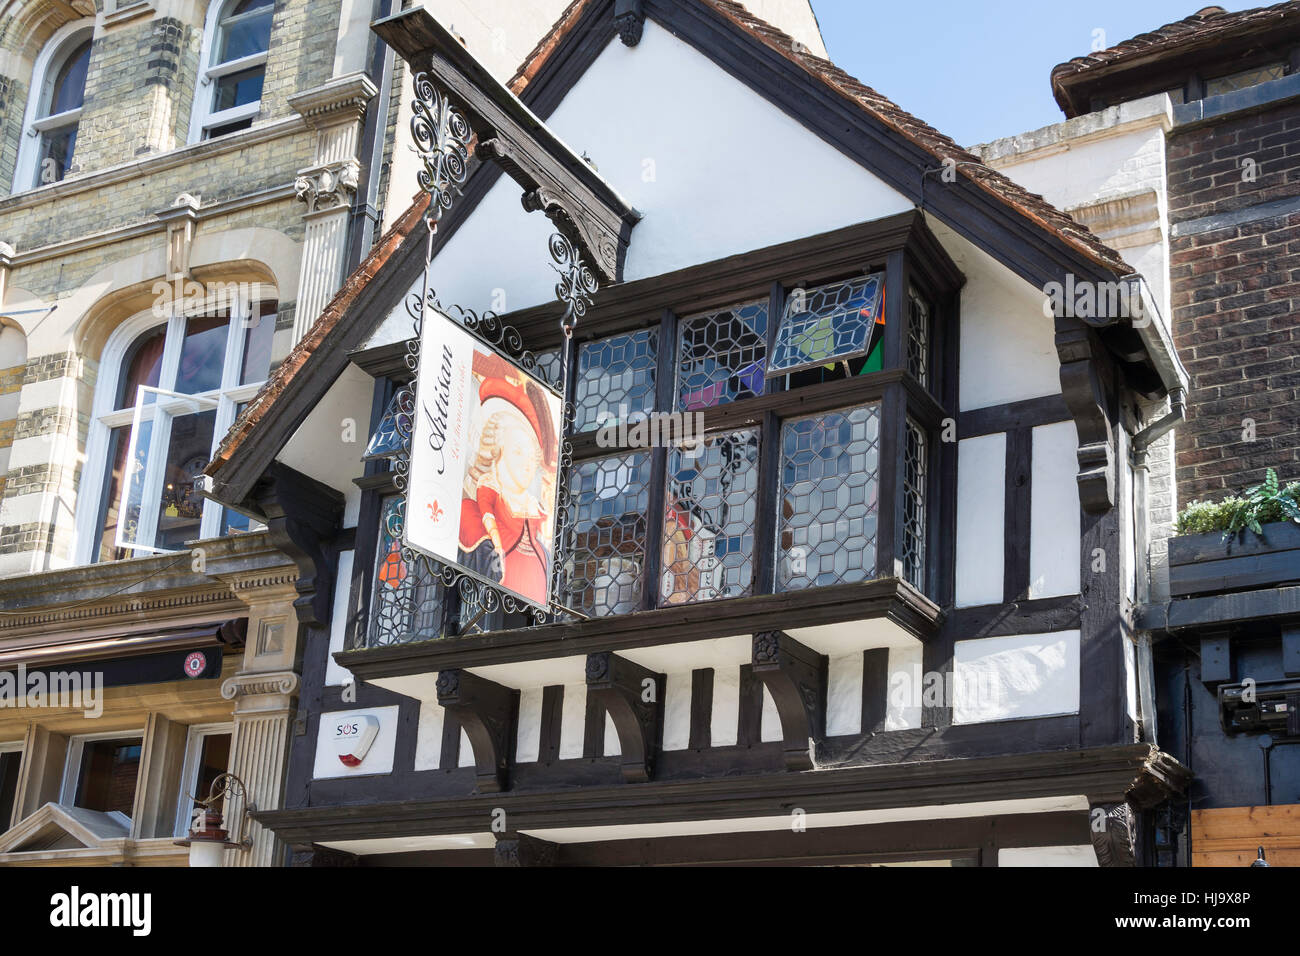 Artisan Tea Rooms & Patisserie in period building, Market Square, Horsham, West Sussex, England, United Kingdom - Stock Image